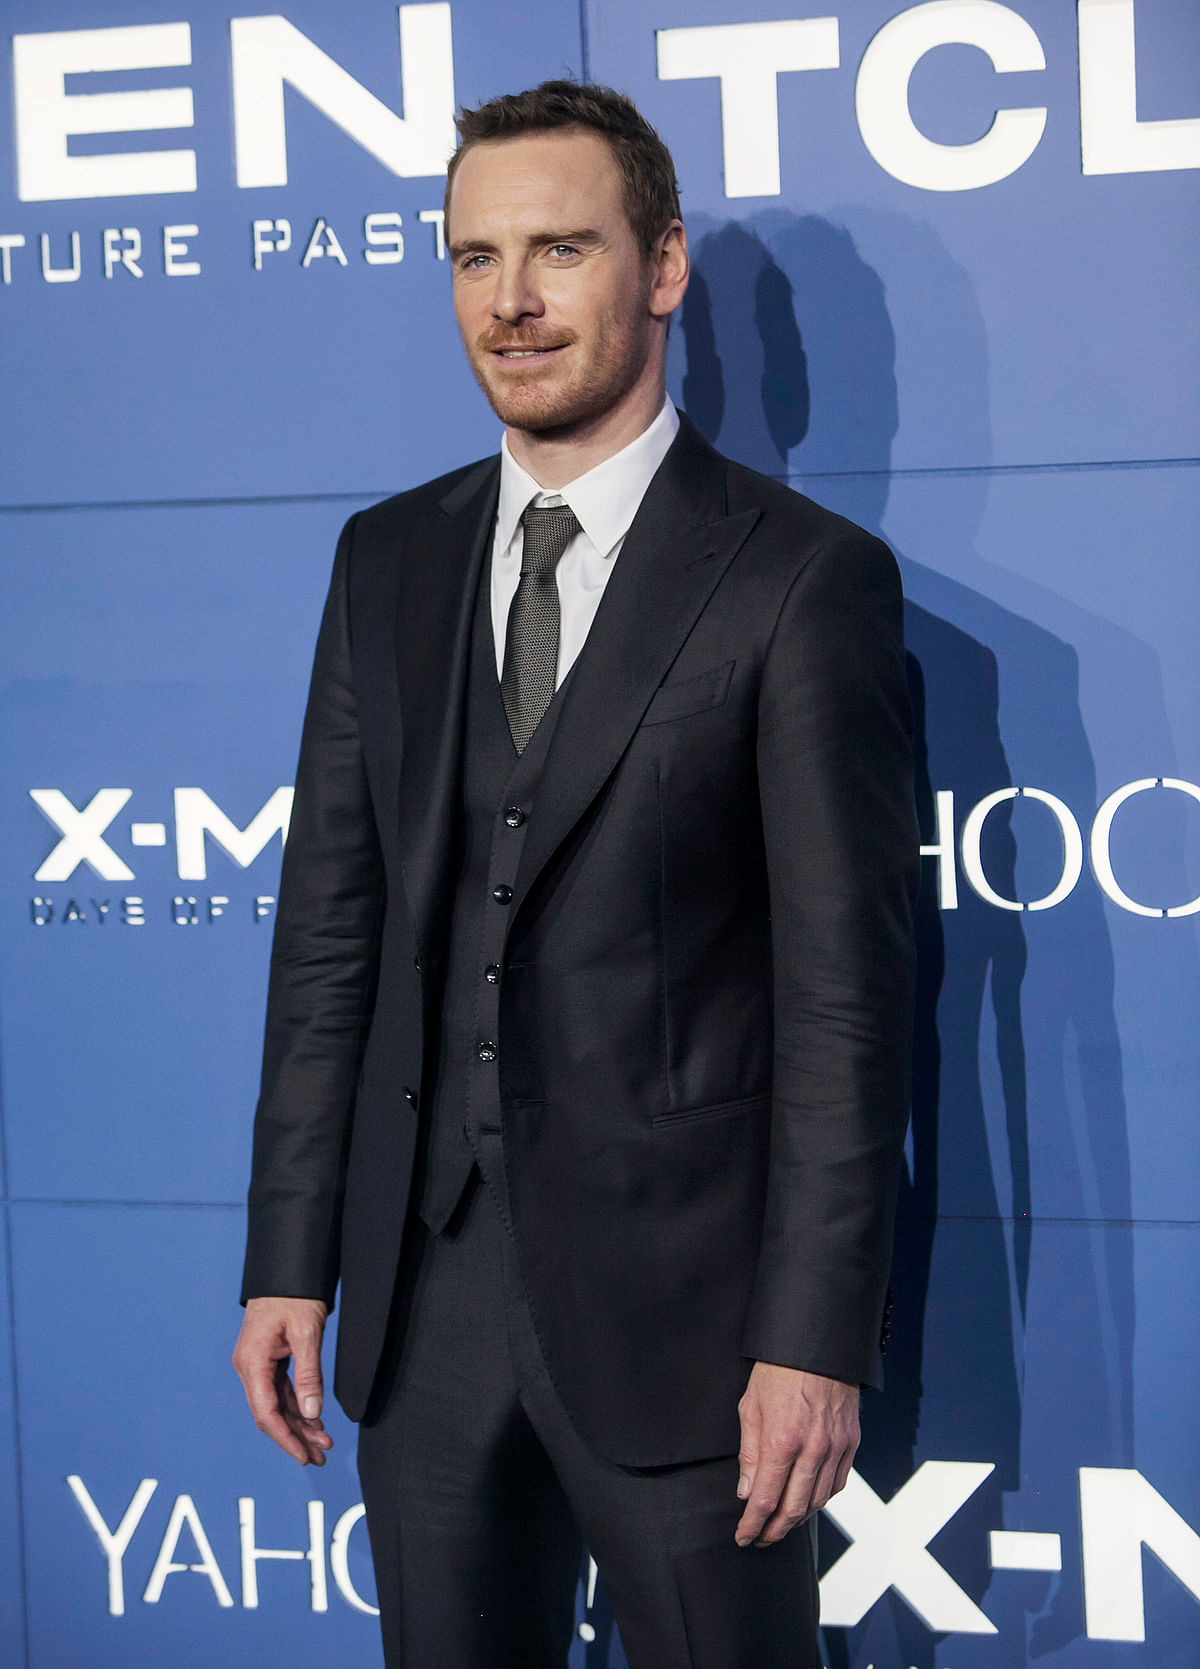 Actor Michael Fassbender attends the <i>X-Men: Days of Future Past</i> world movie premiere in New York. (Photo: Reuters)